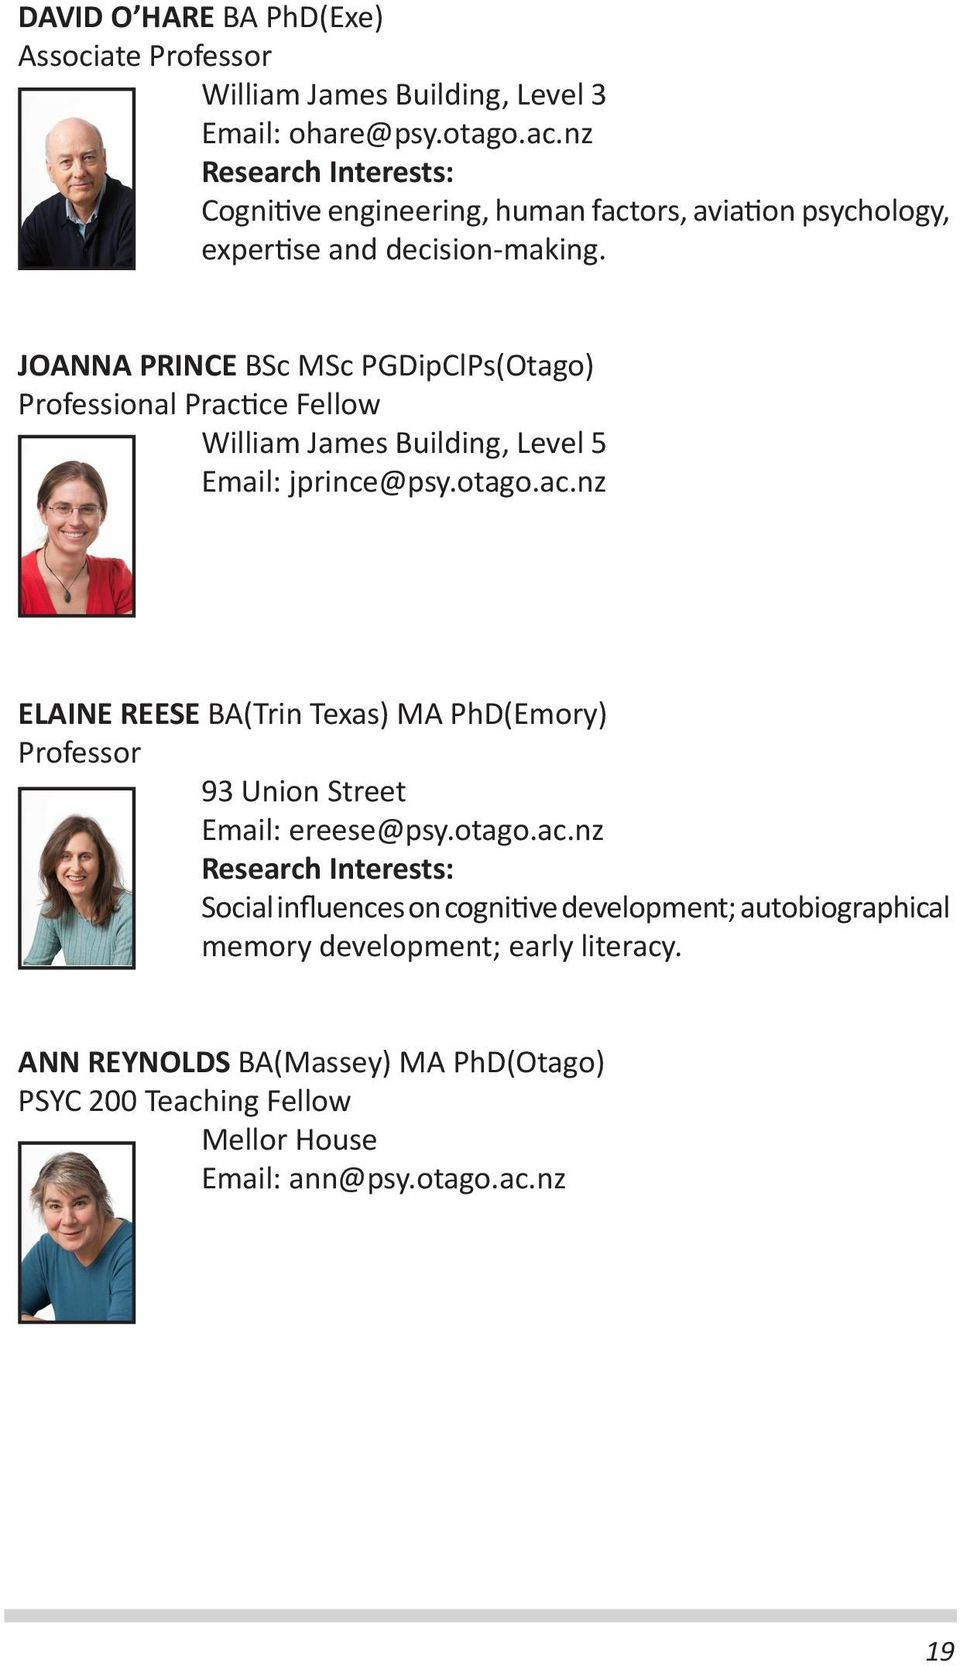 JOANNA PRINCE BSc MSc PGDipClPs(Otago) Professional Practice Fellow William James Building, Level 5 Email: jprince@psy.otago.ac.nz ELAINE REESE BA(Trin Texas) MA PhD(Emory) Professor 93 Union Street Email: ereese@psy.